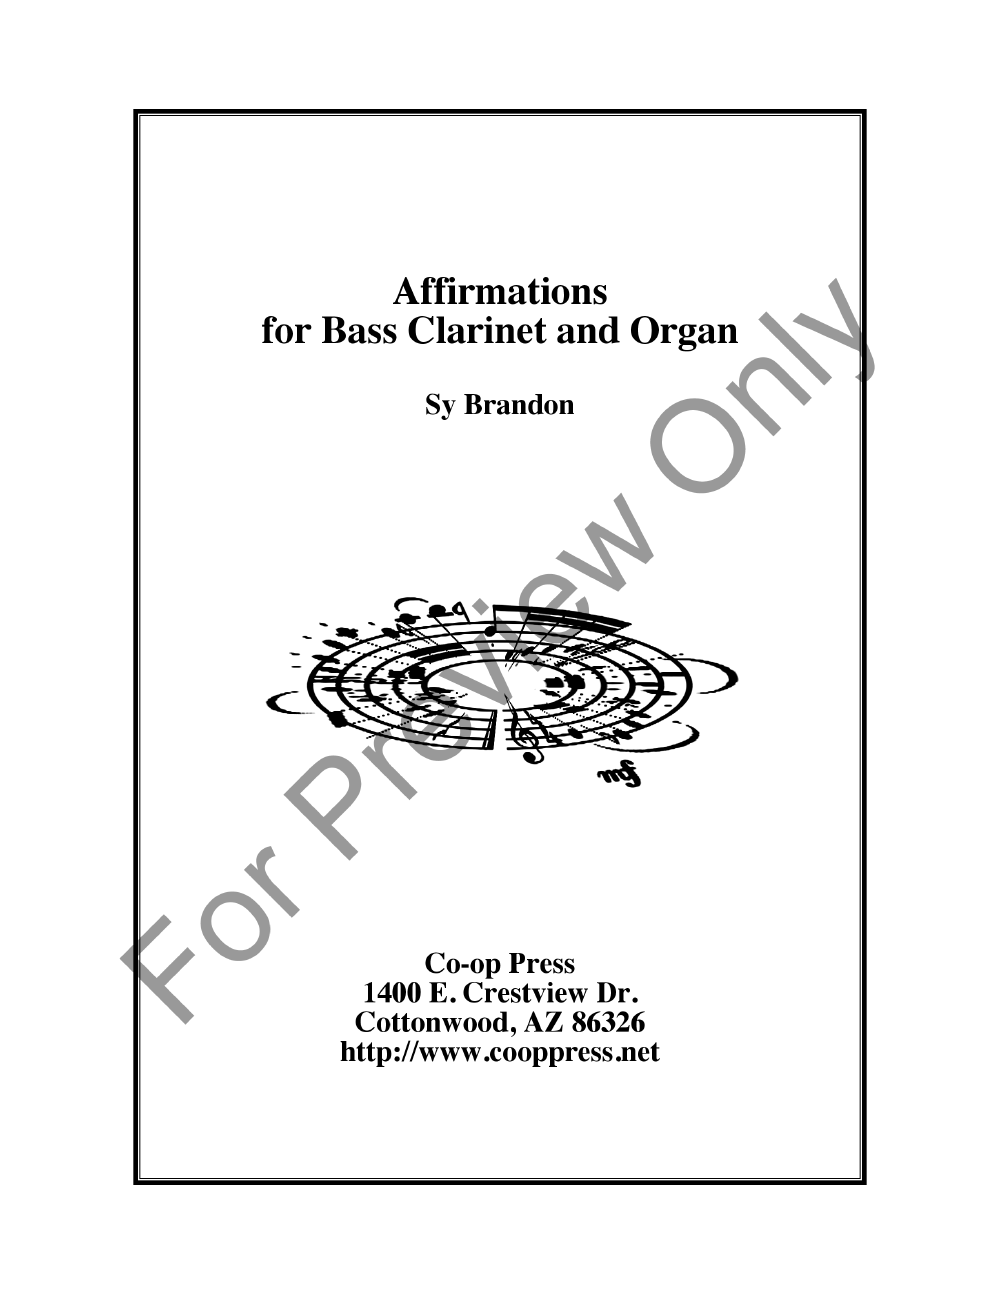 Affirmations for Bass Clarinet and Organ Thumbnail